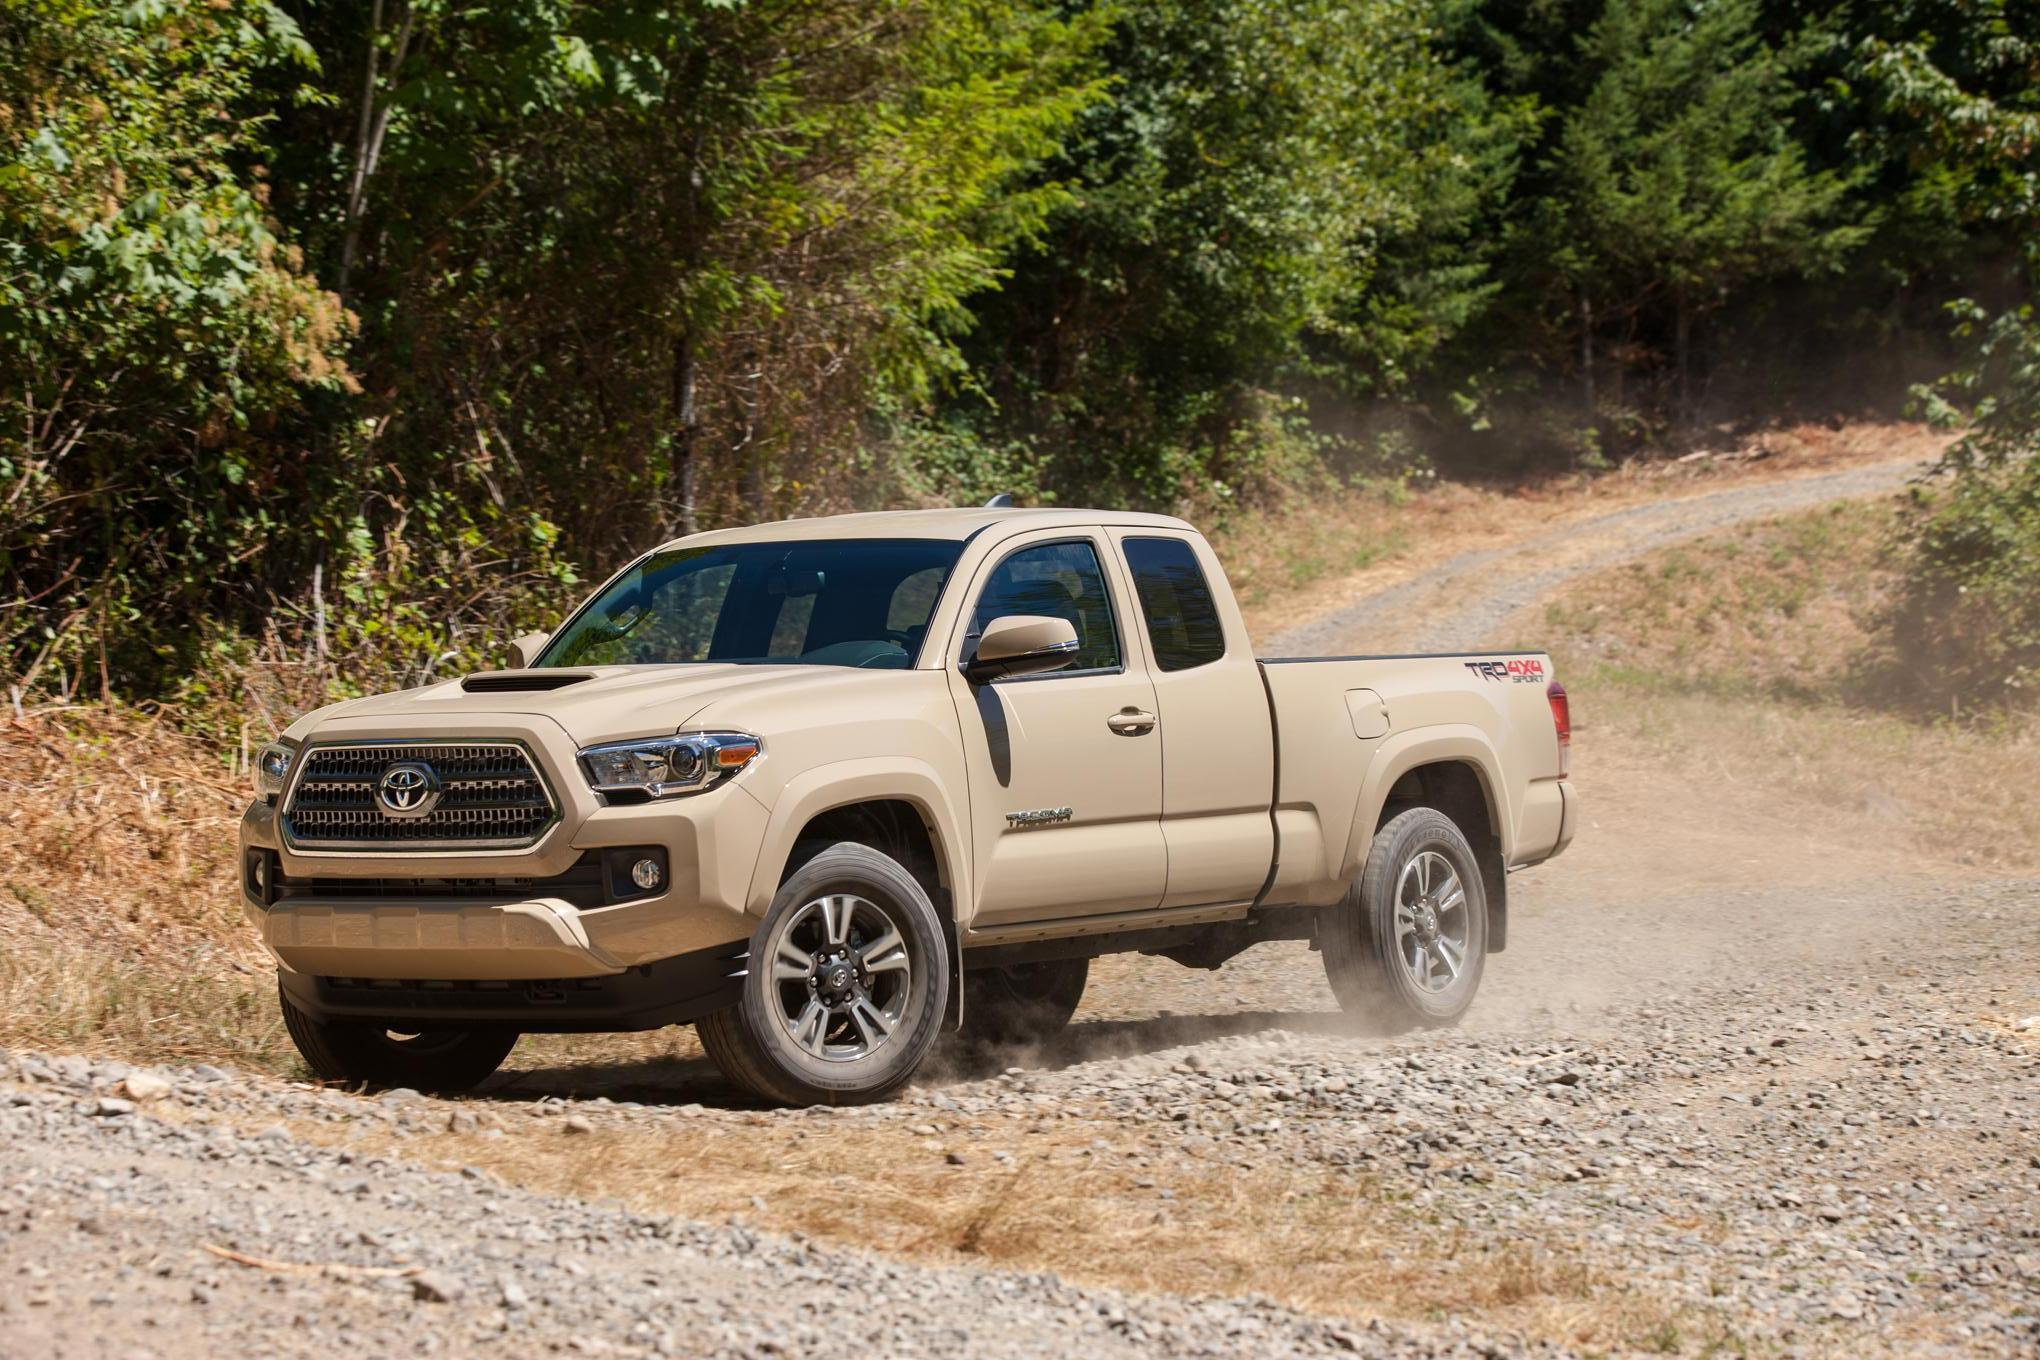 2016 TOYOTA TACOMA TRD SPORT COMPUTER WALLPAPERS